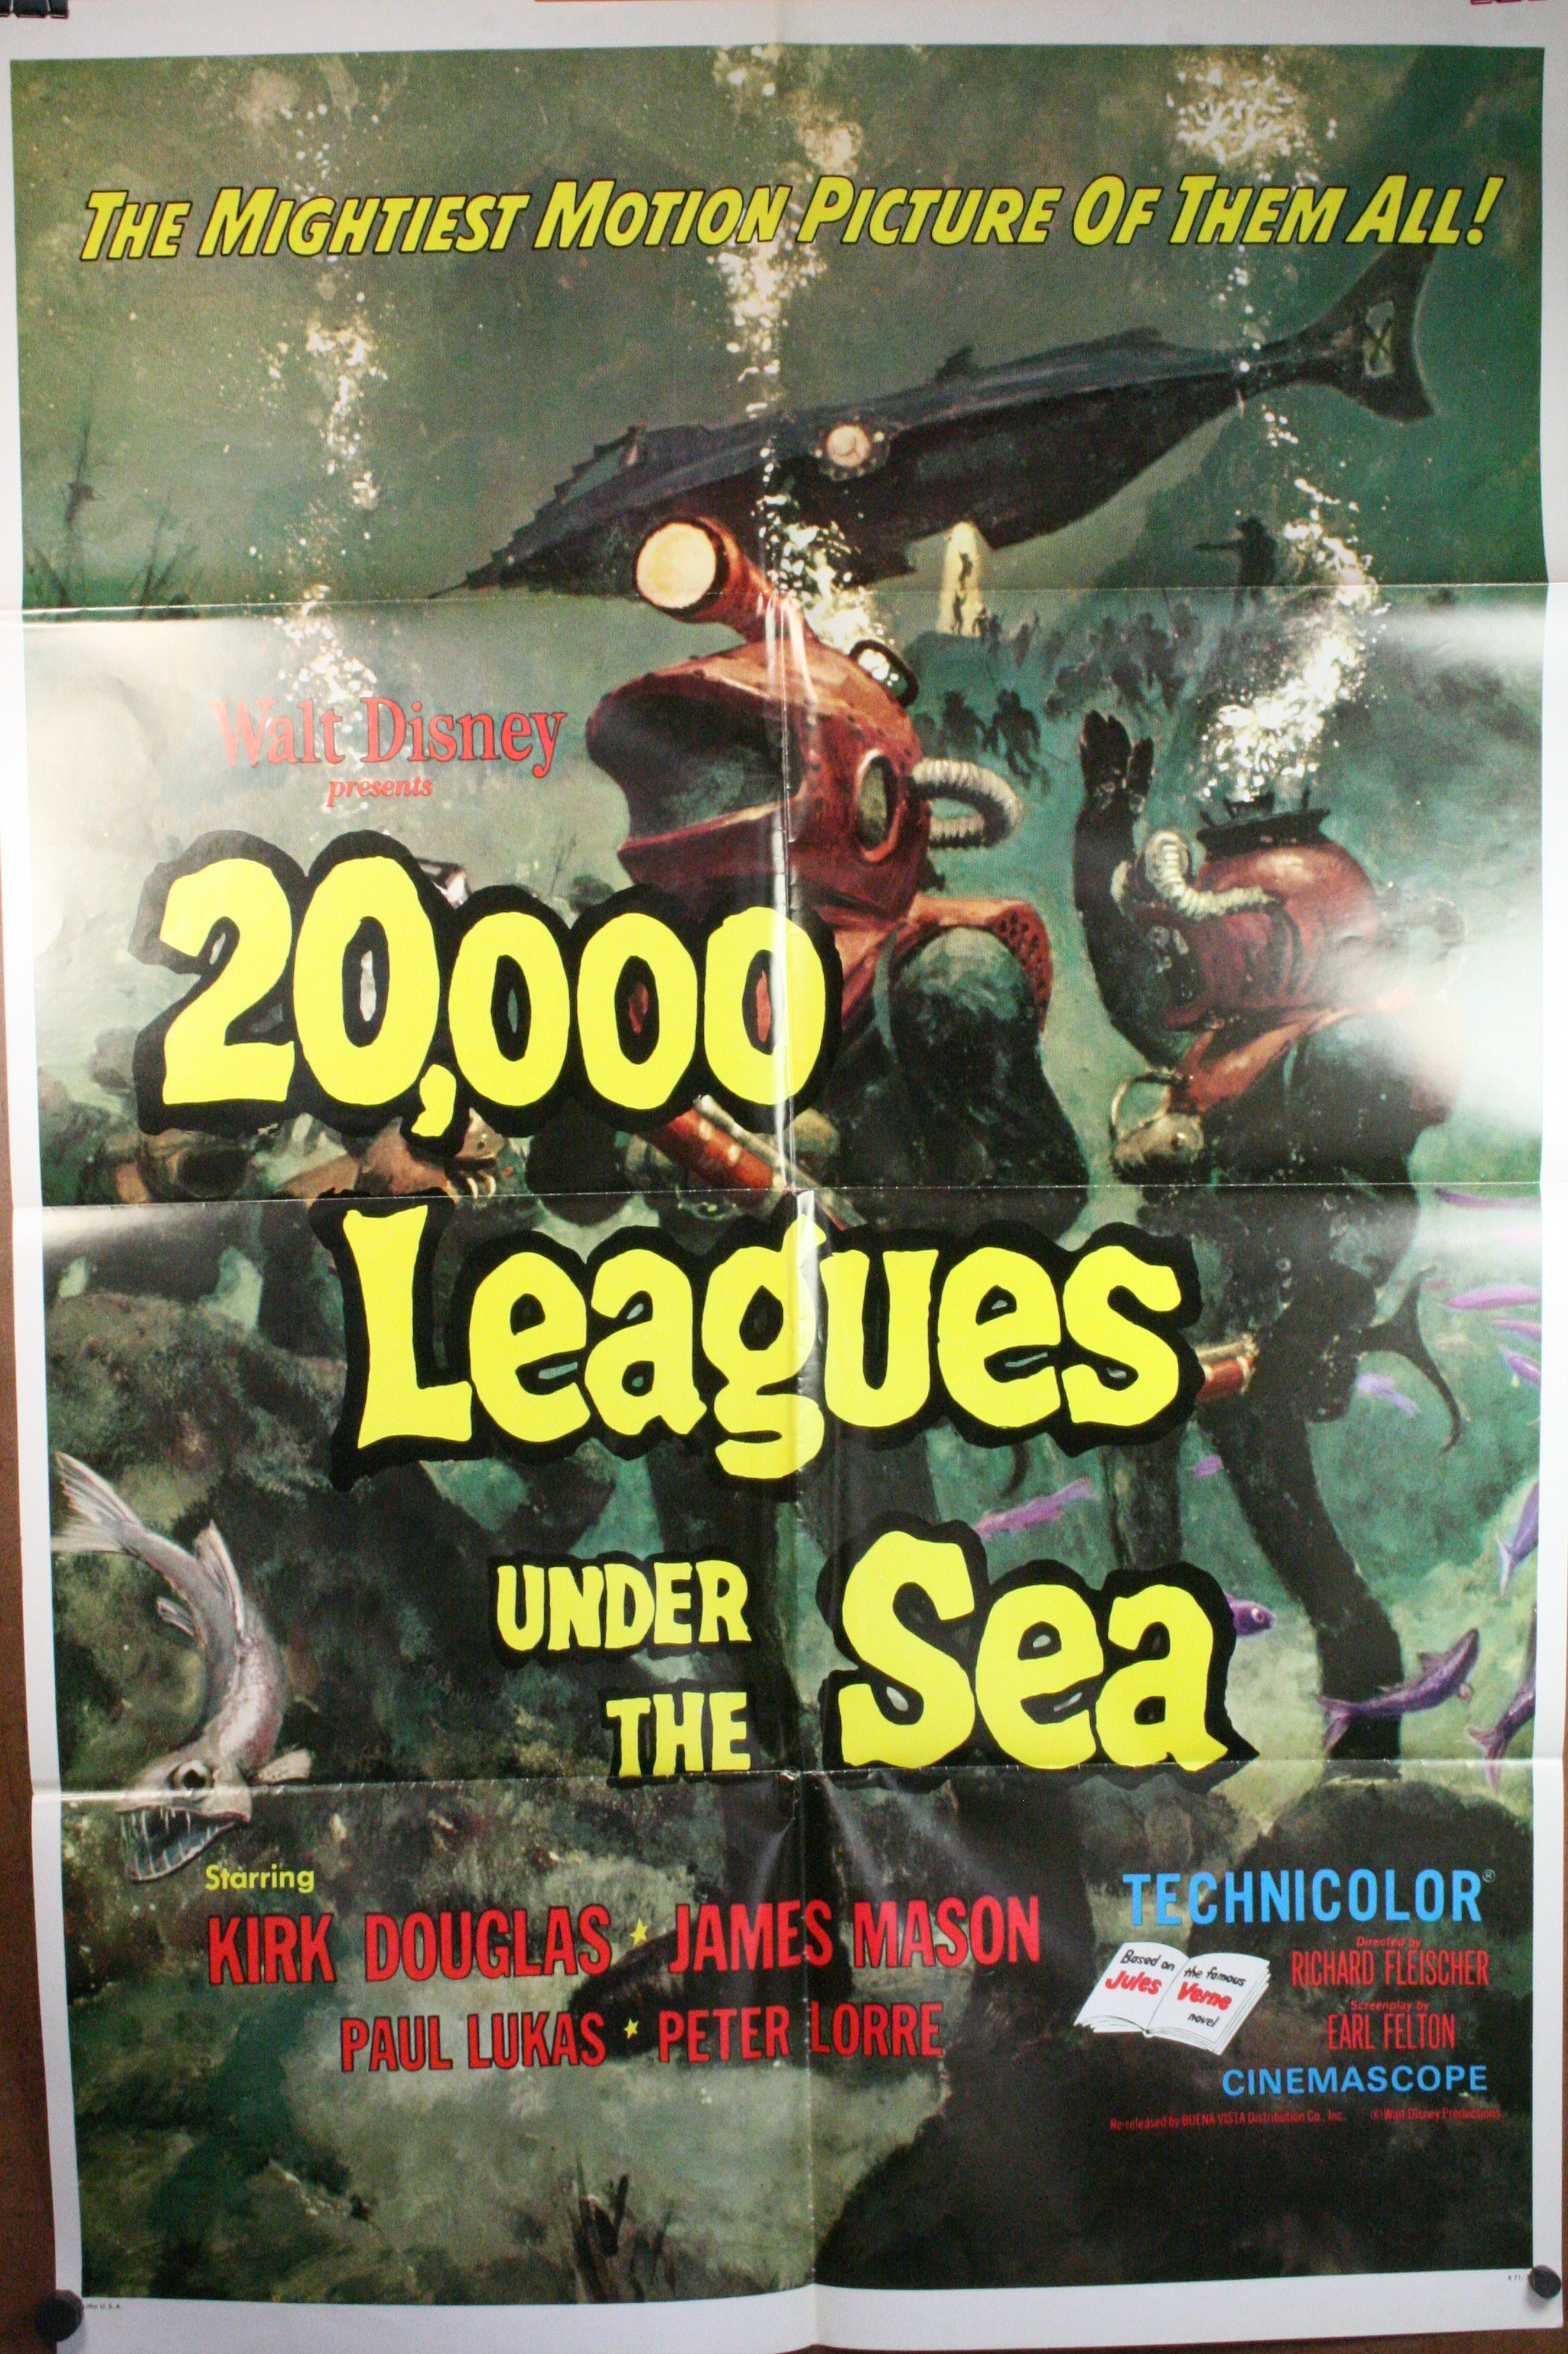 an analysis of the movie 20000 leagues under the sea Home film reviews december 31, 1953 11:00pm pt 20000 leagues under  the sea walt disney's production of 20000 leagues under the sea is very.